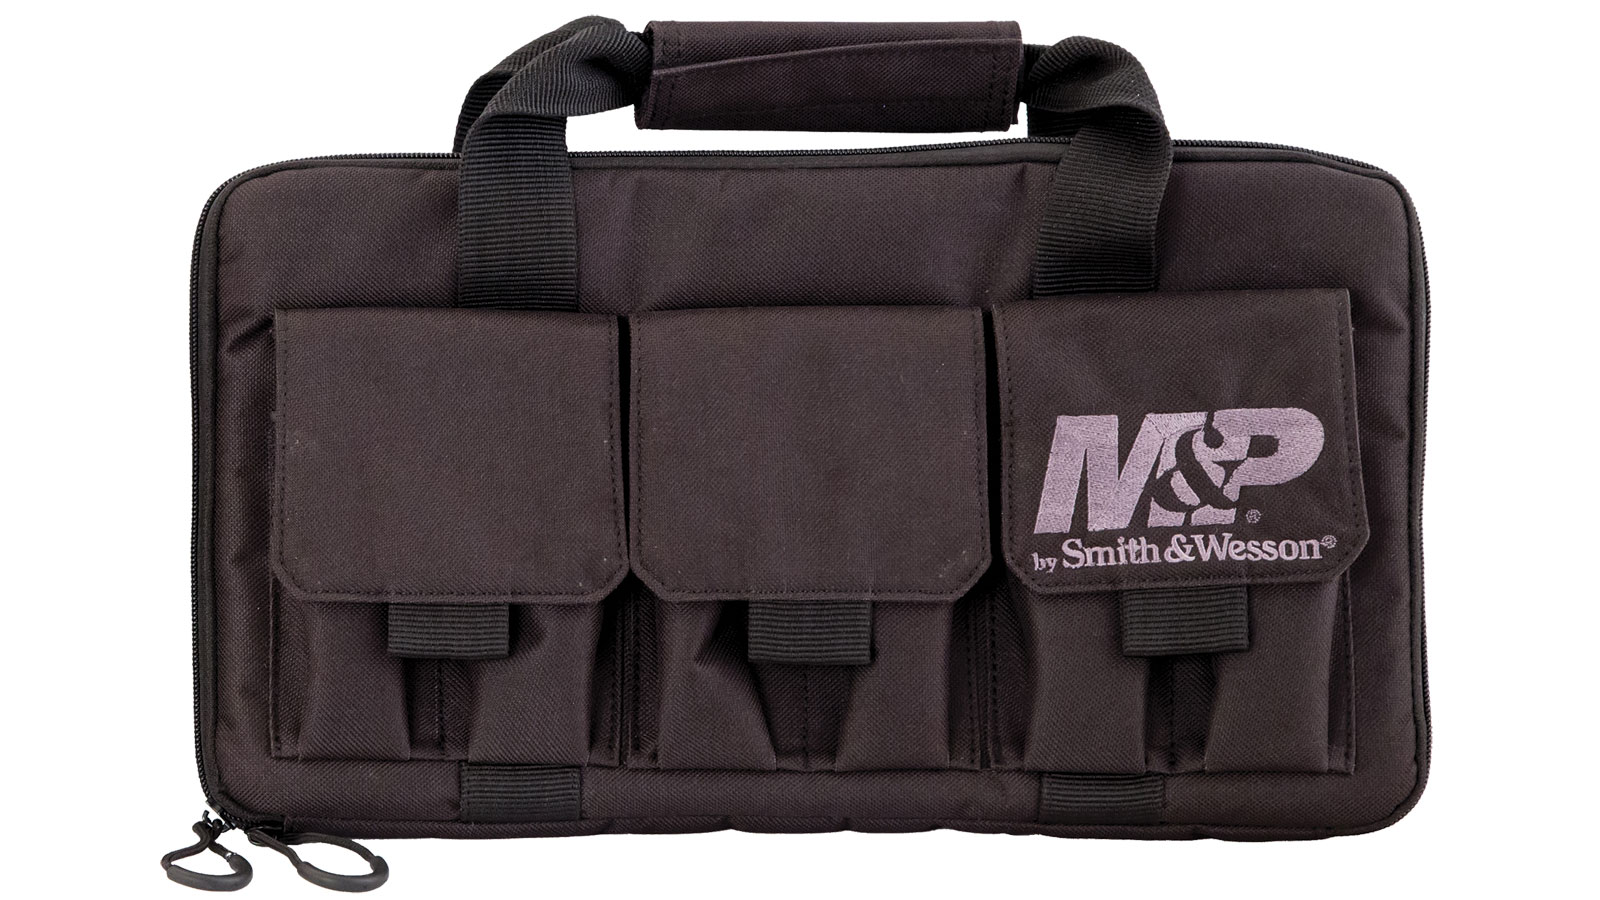 M&P Accessories 110029 Pro Tac Double Handgun Gun Case Nylon Smooth